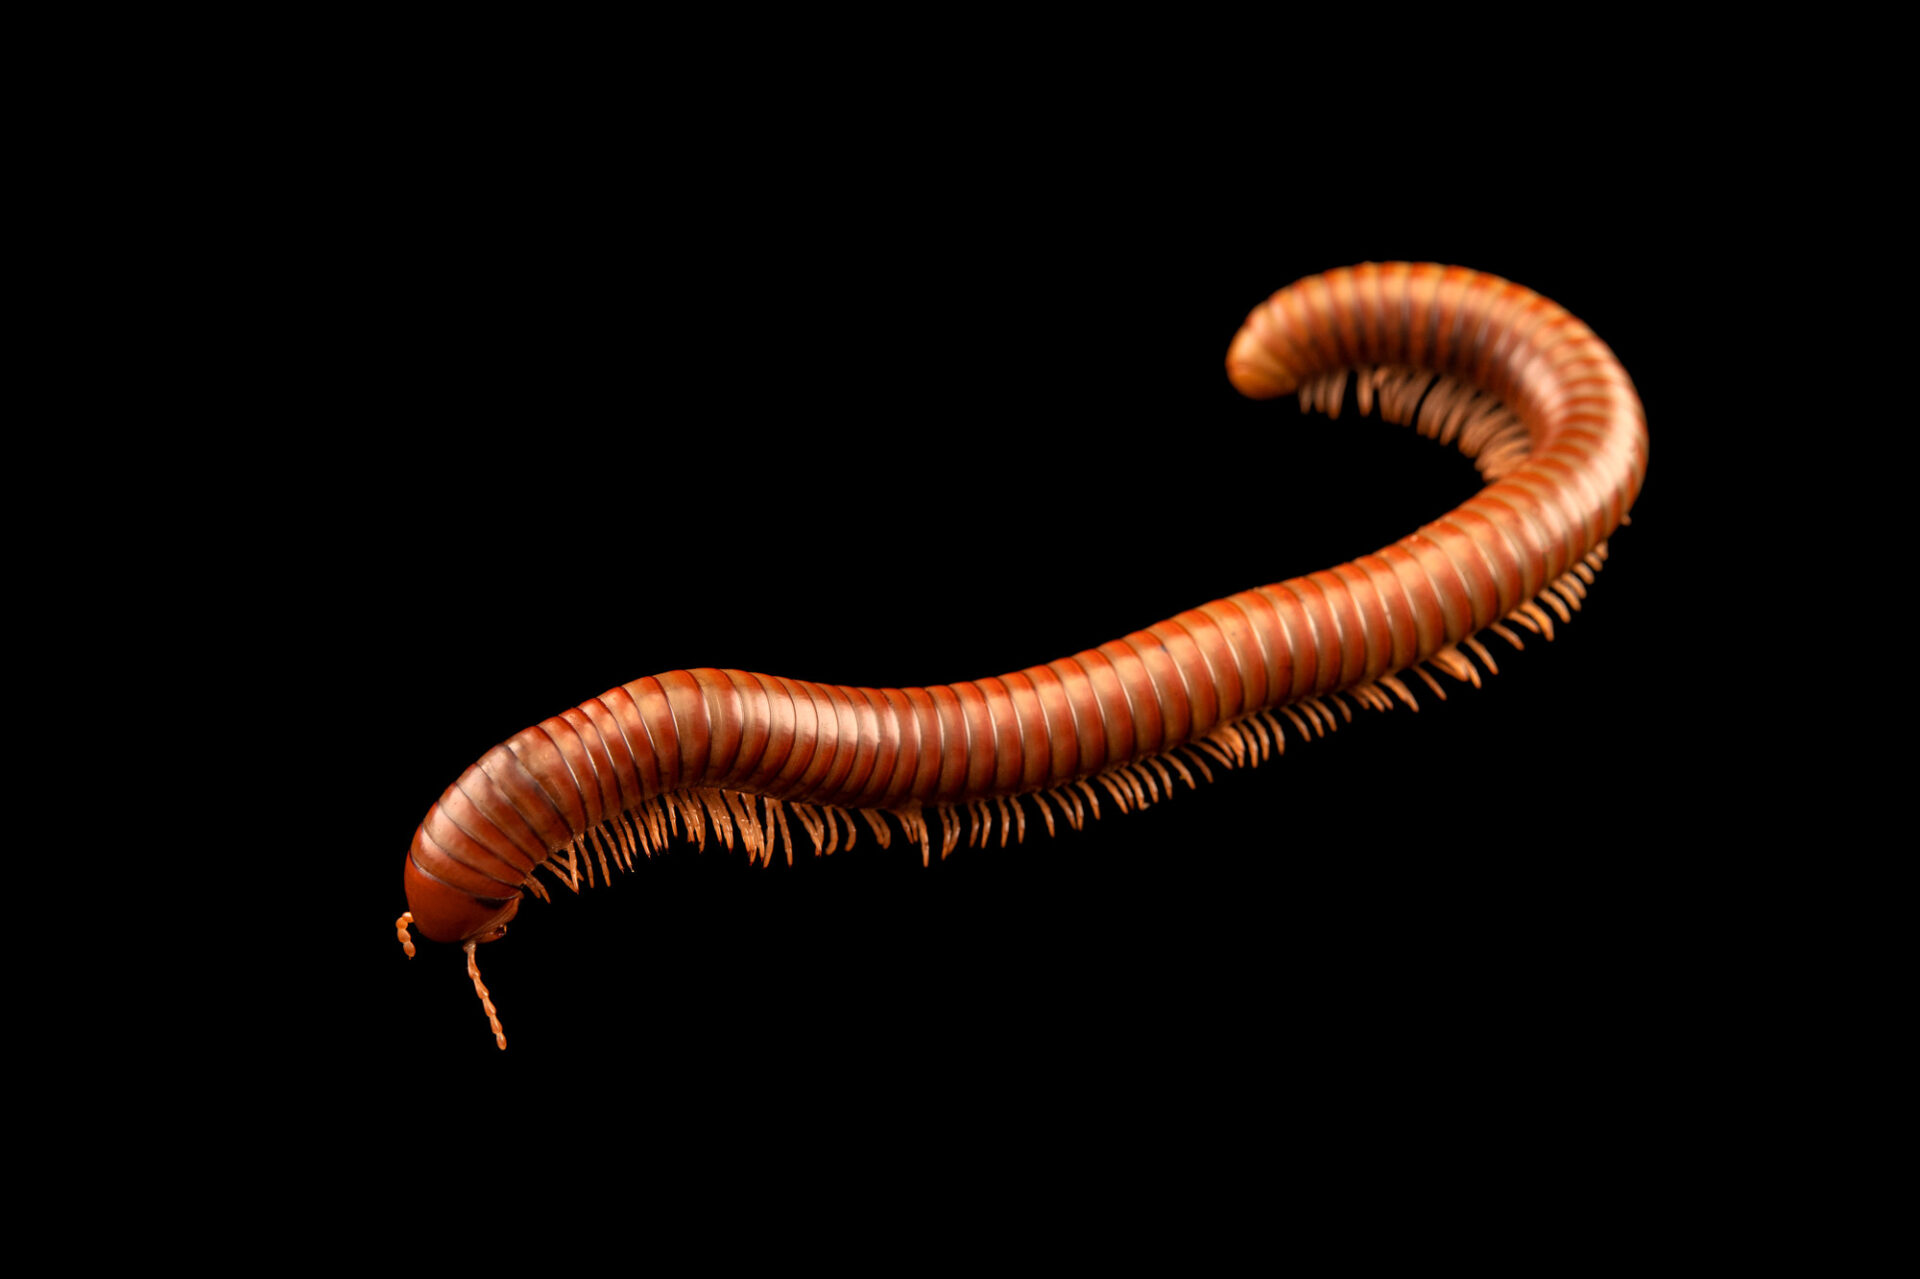 Photo: An olive banded millipede (Spirostreptus sp.) at Aquarium Berlin.